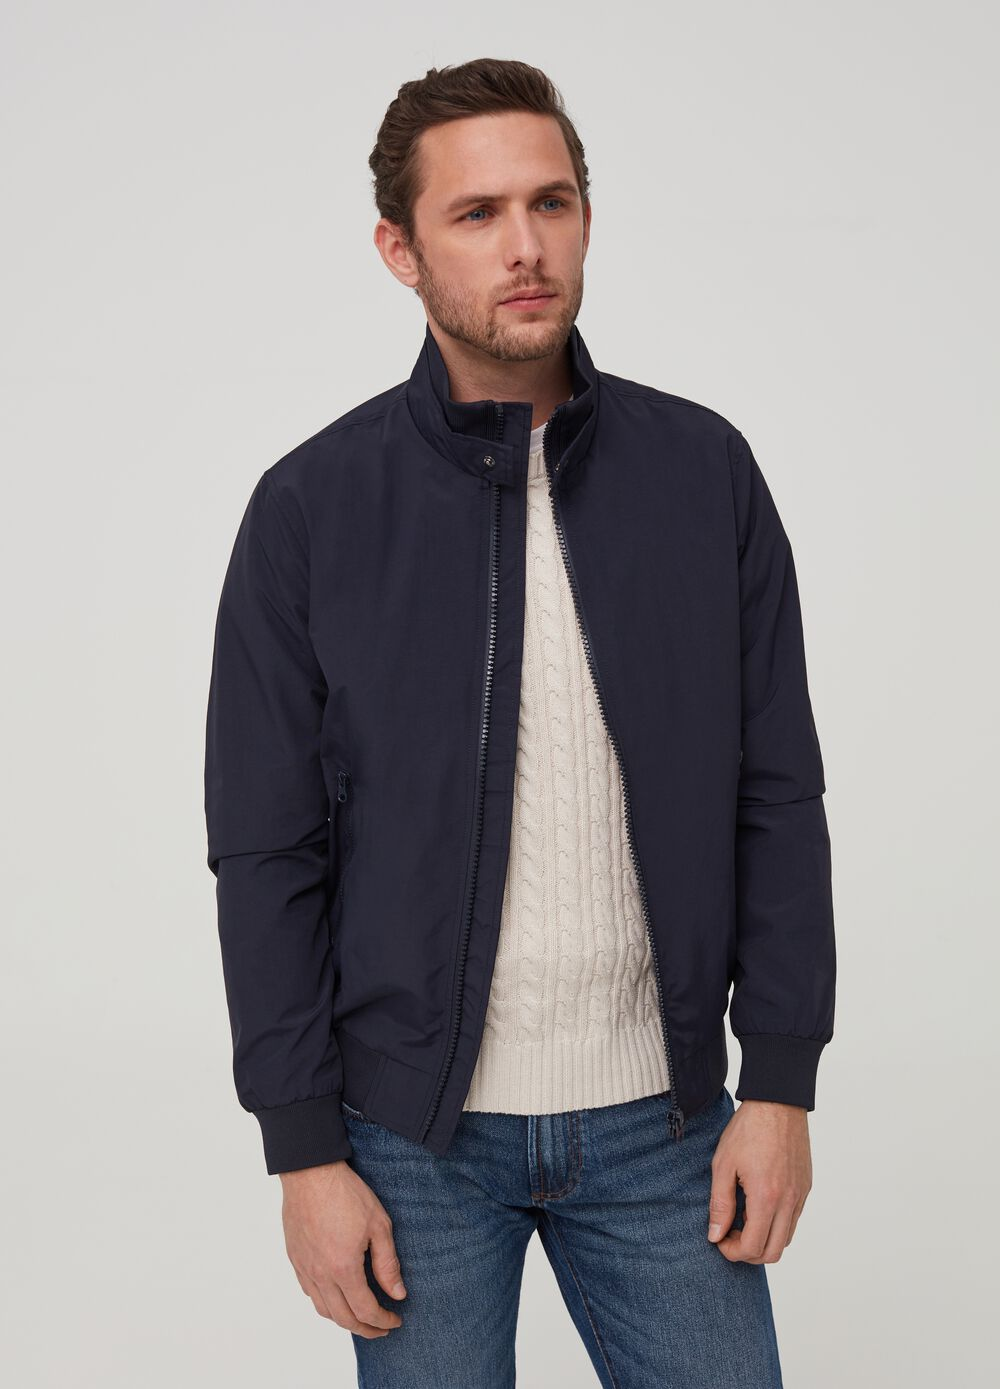 Solid colour jacket with high neck.